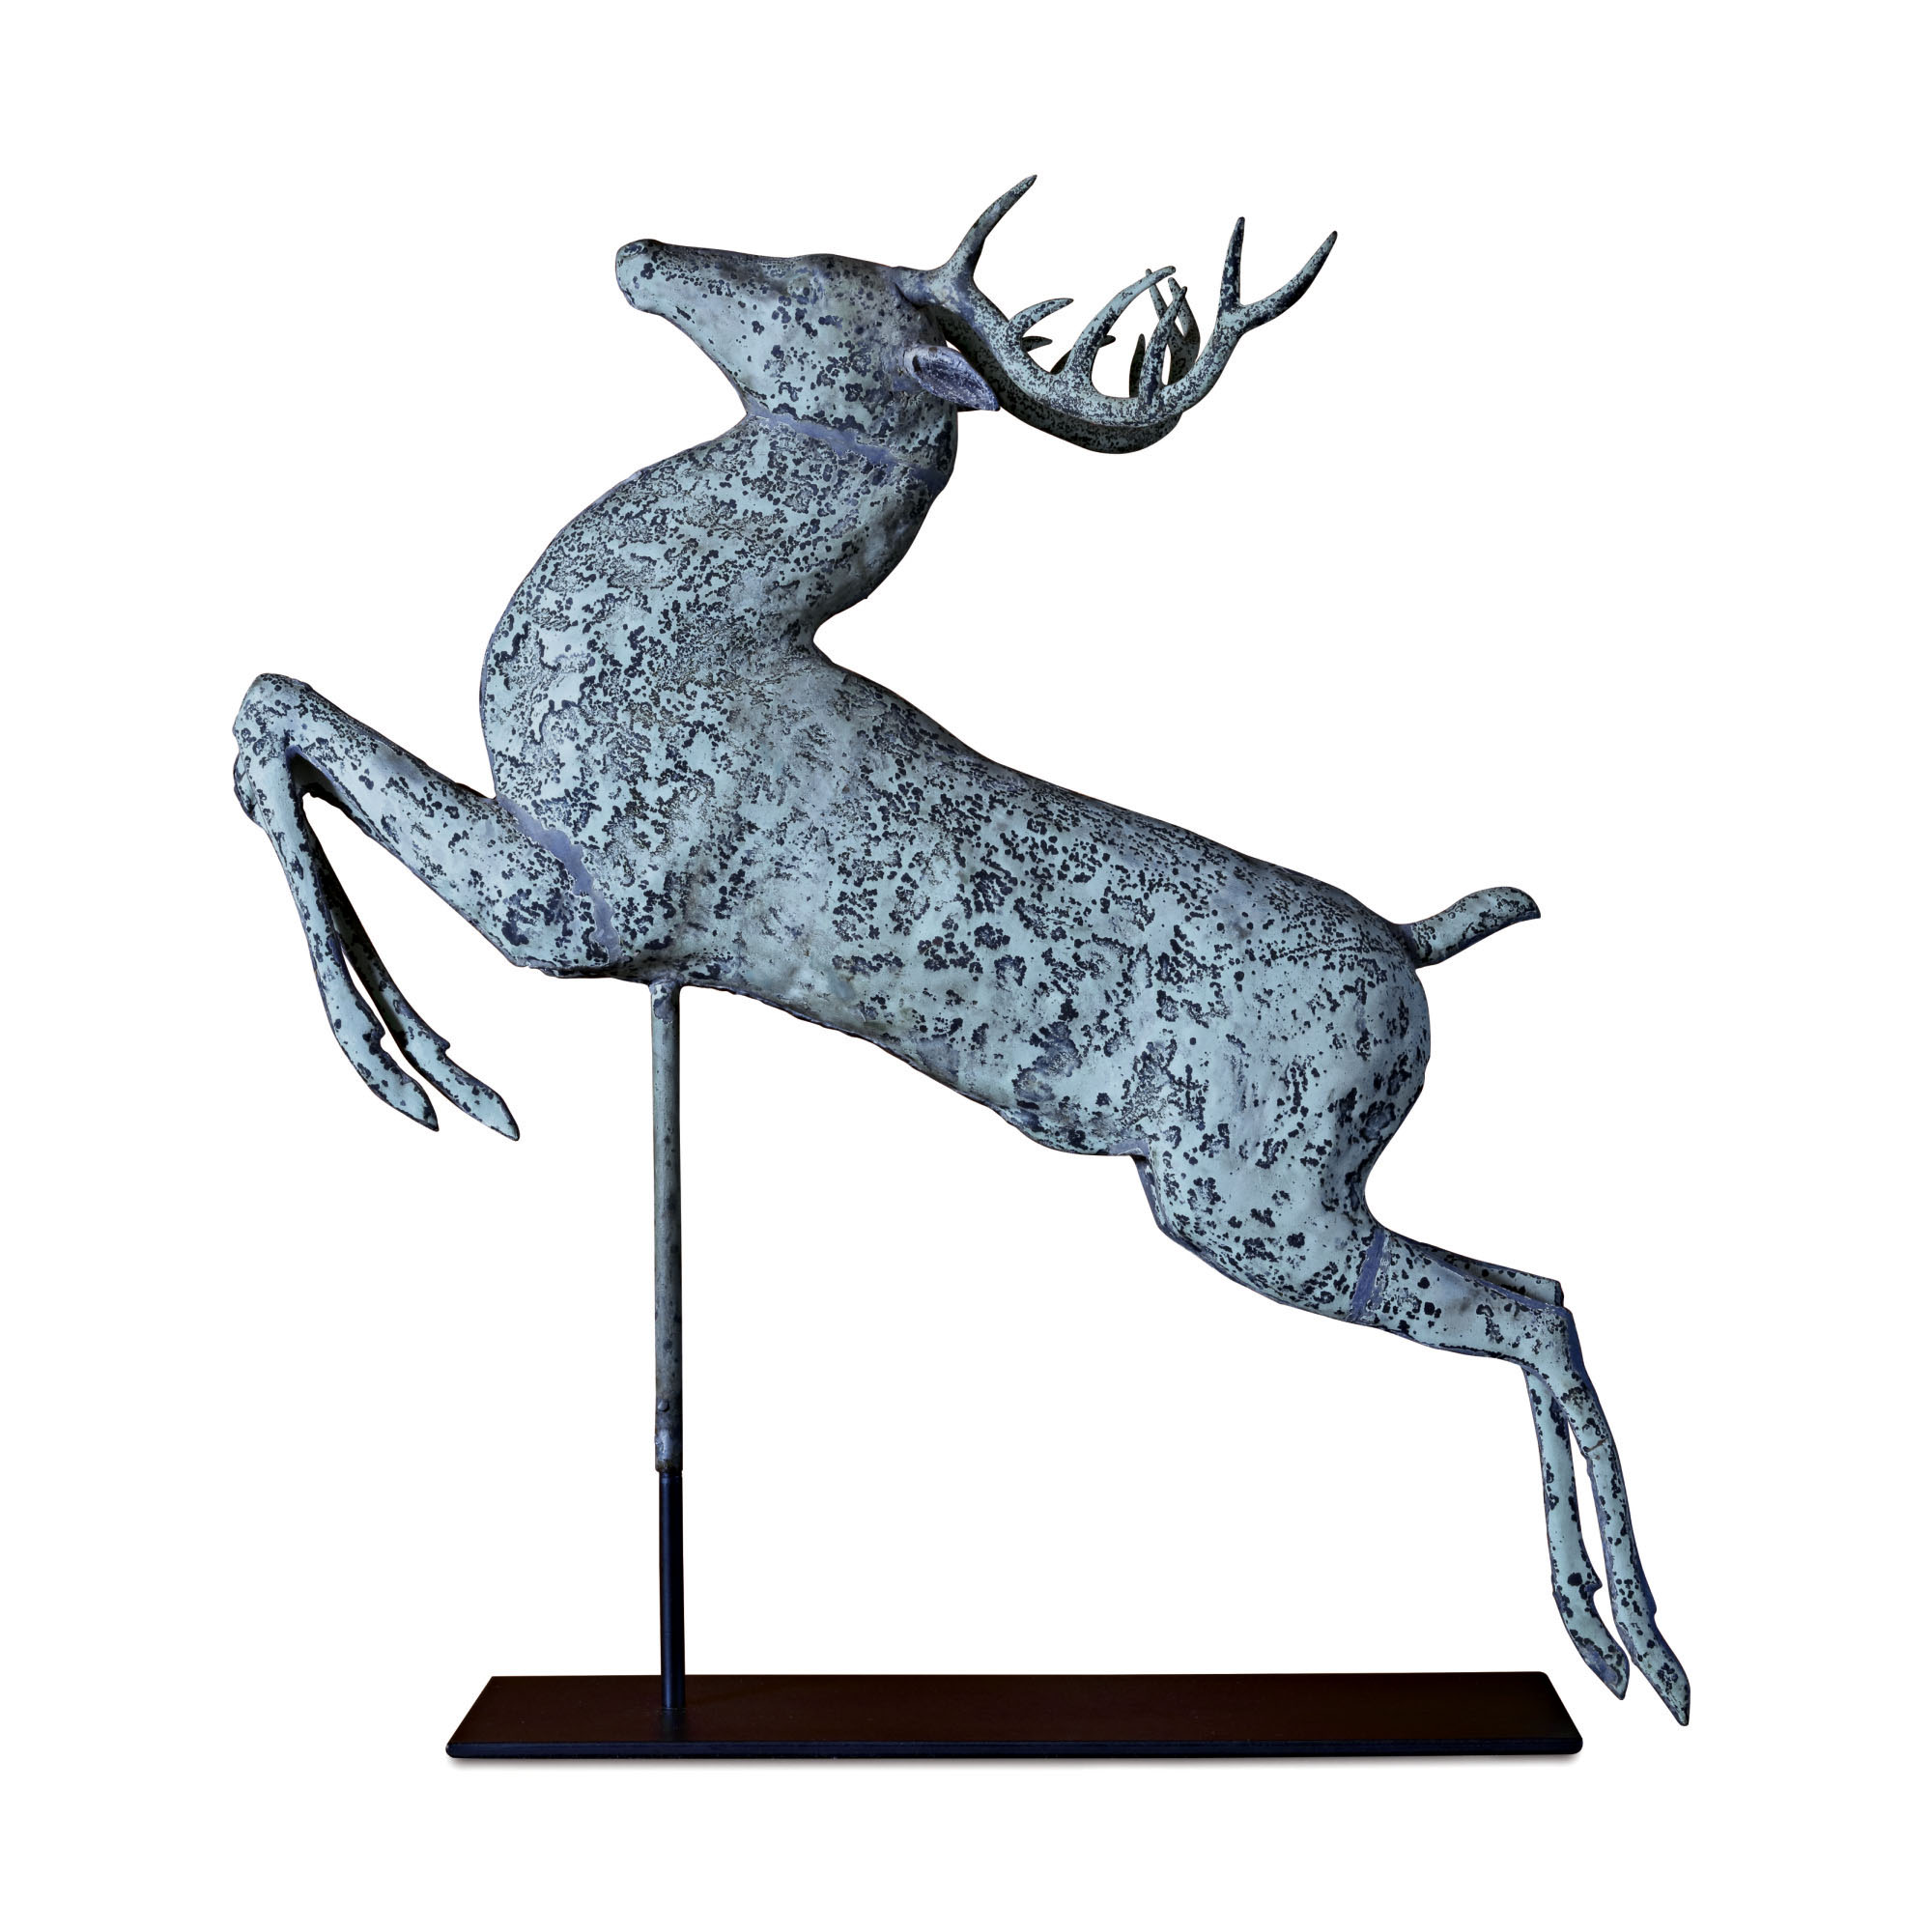 VERY FINE AND RARE MOLDED FULL BODIED SHEET COPPER LEAPING STAG WEATHERVANE, HARRIS & CO., BOSTON, MASSACHUSETTS, CIRCA 1880